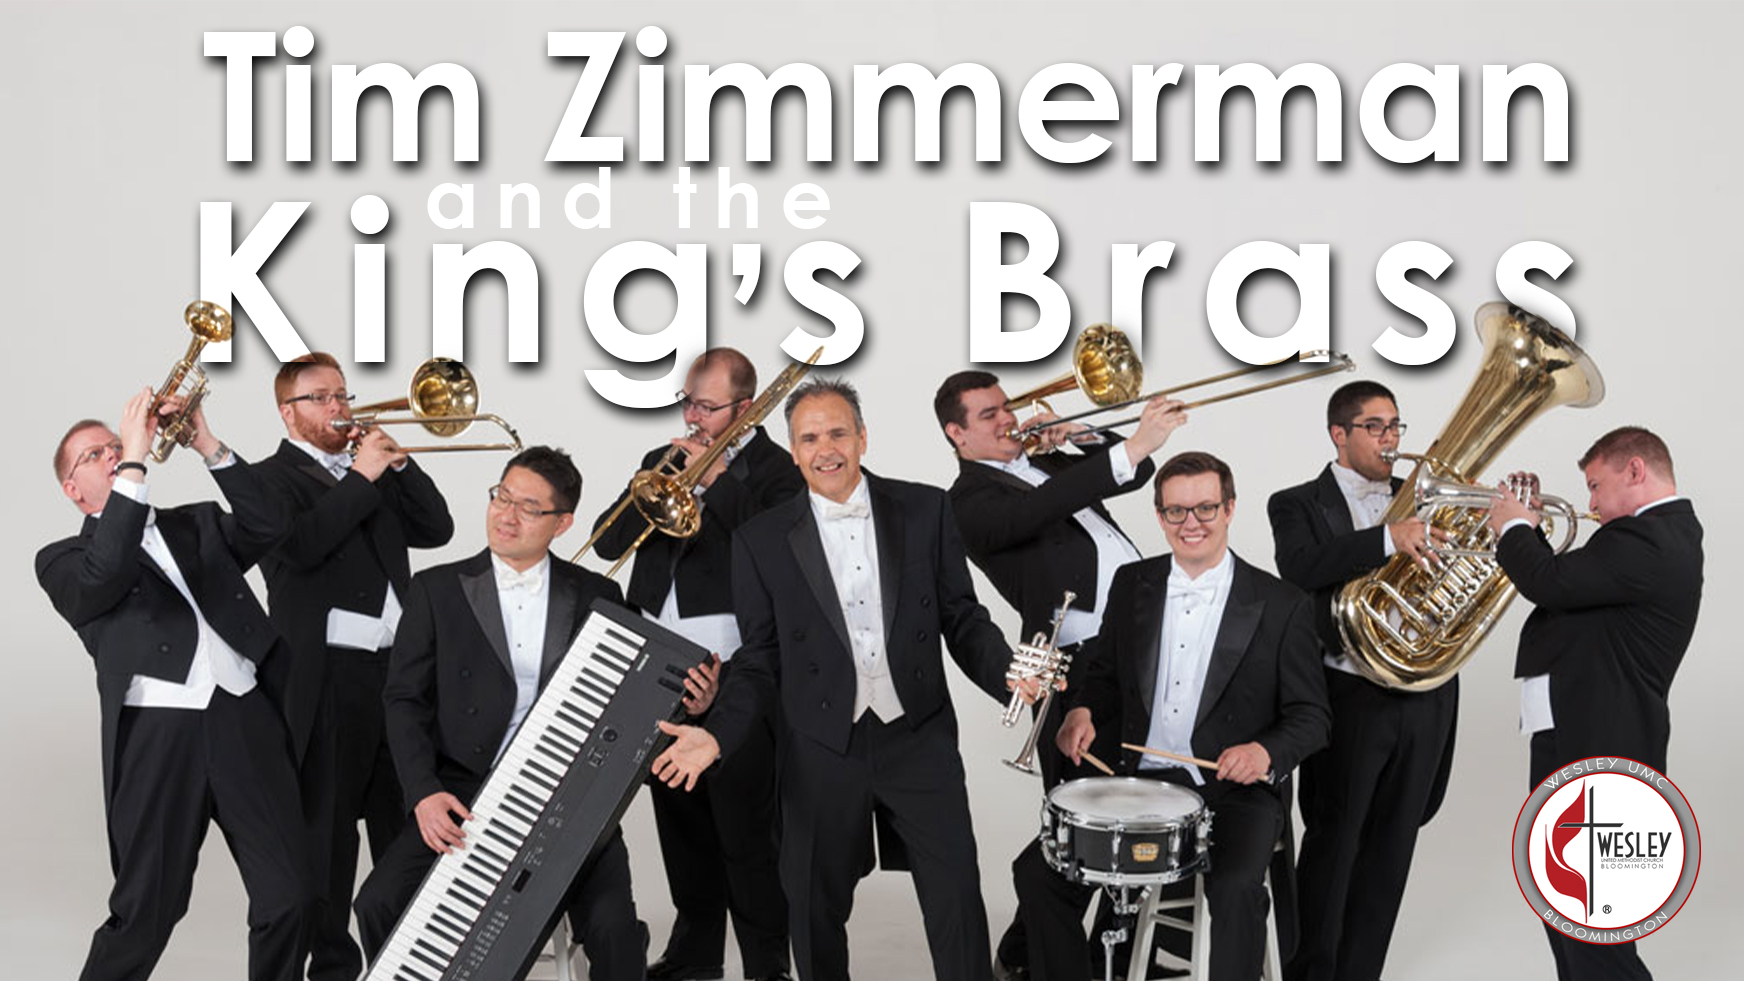 tim zimmerman and the kings brass at wesley